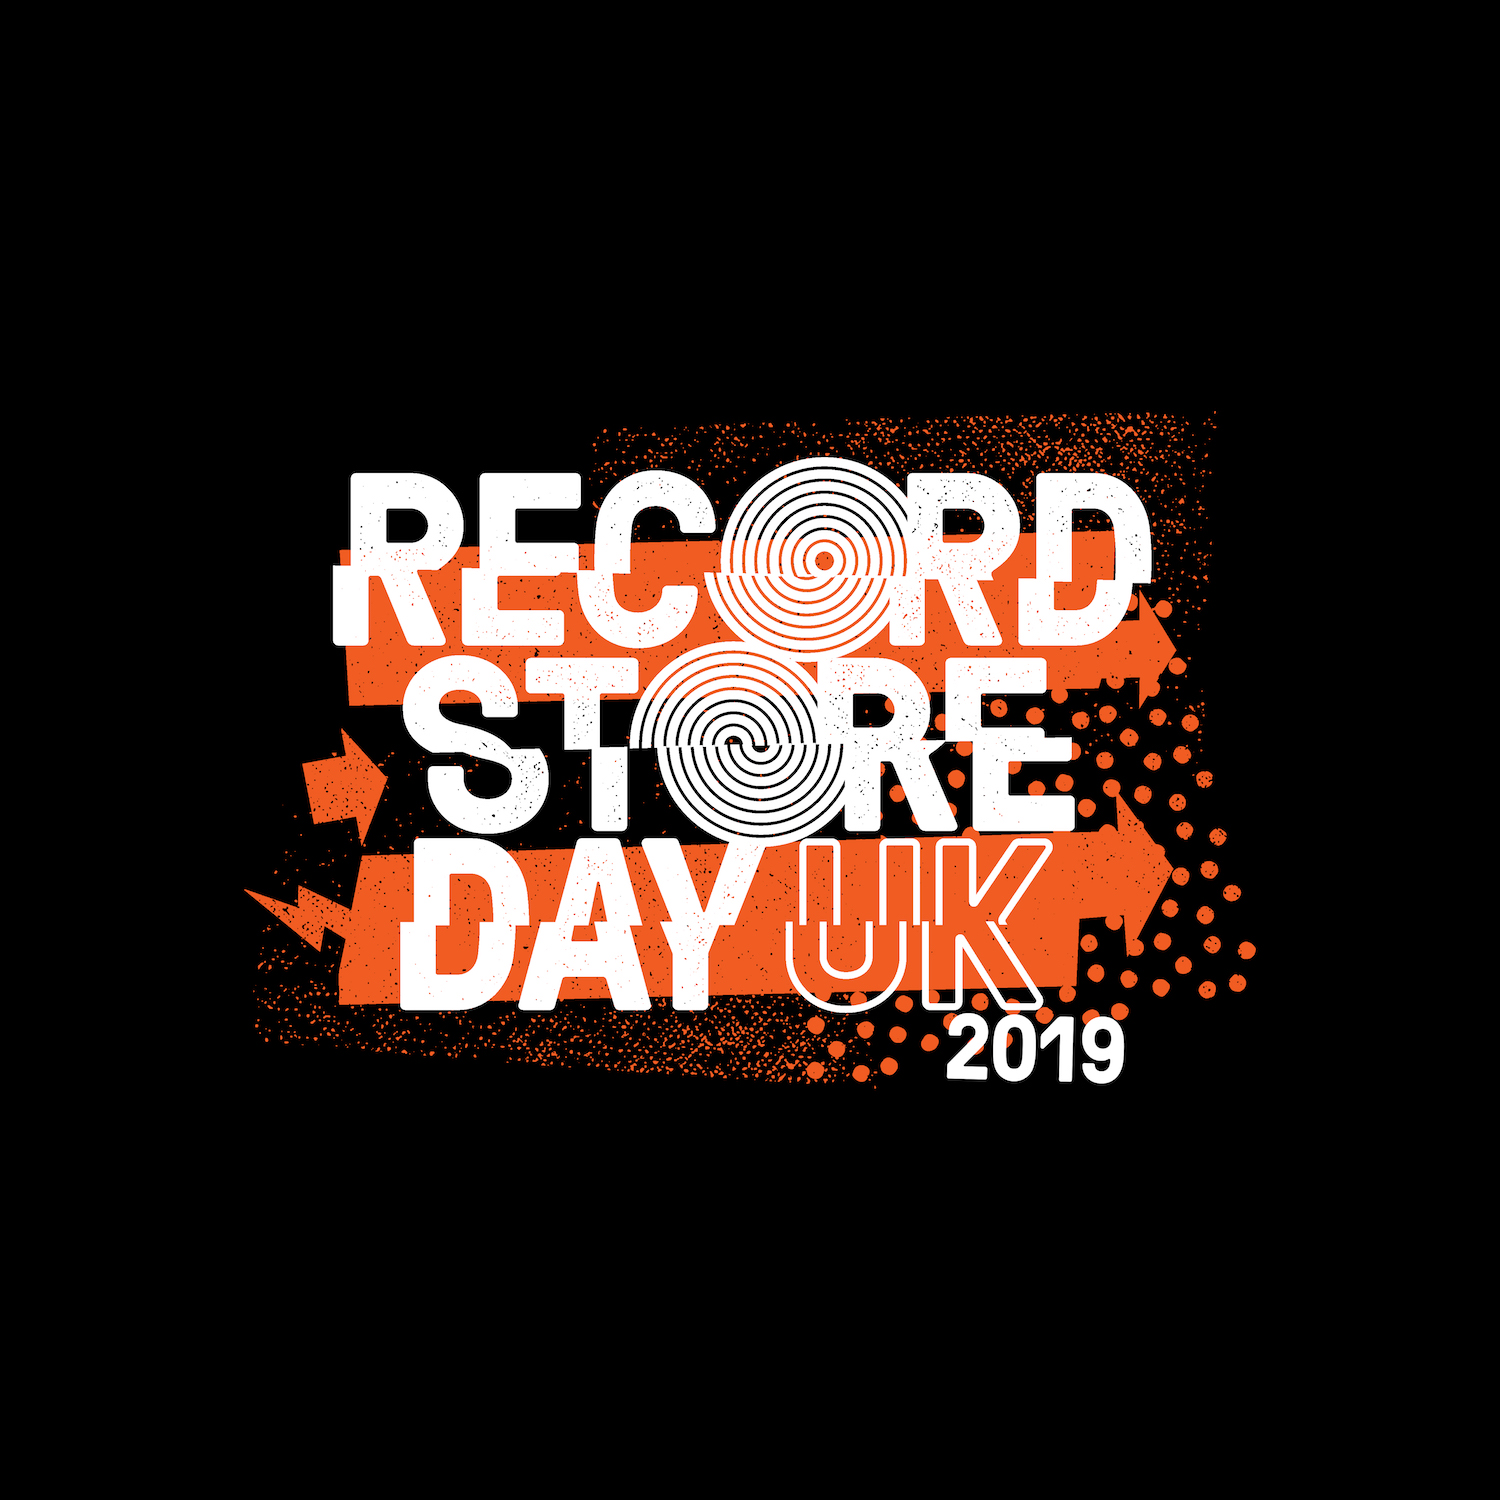 2019 Is Here: The Record Store Day 2019 List Is Here!